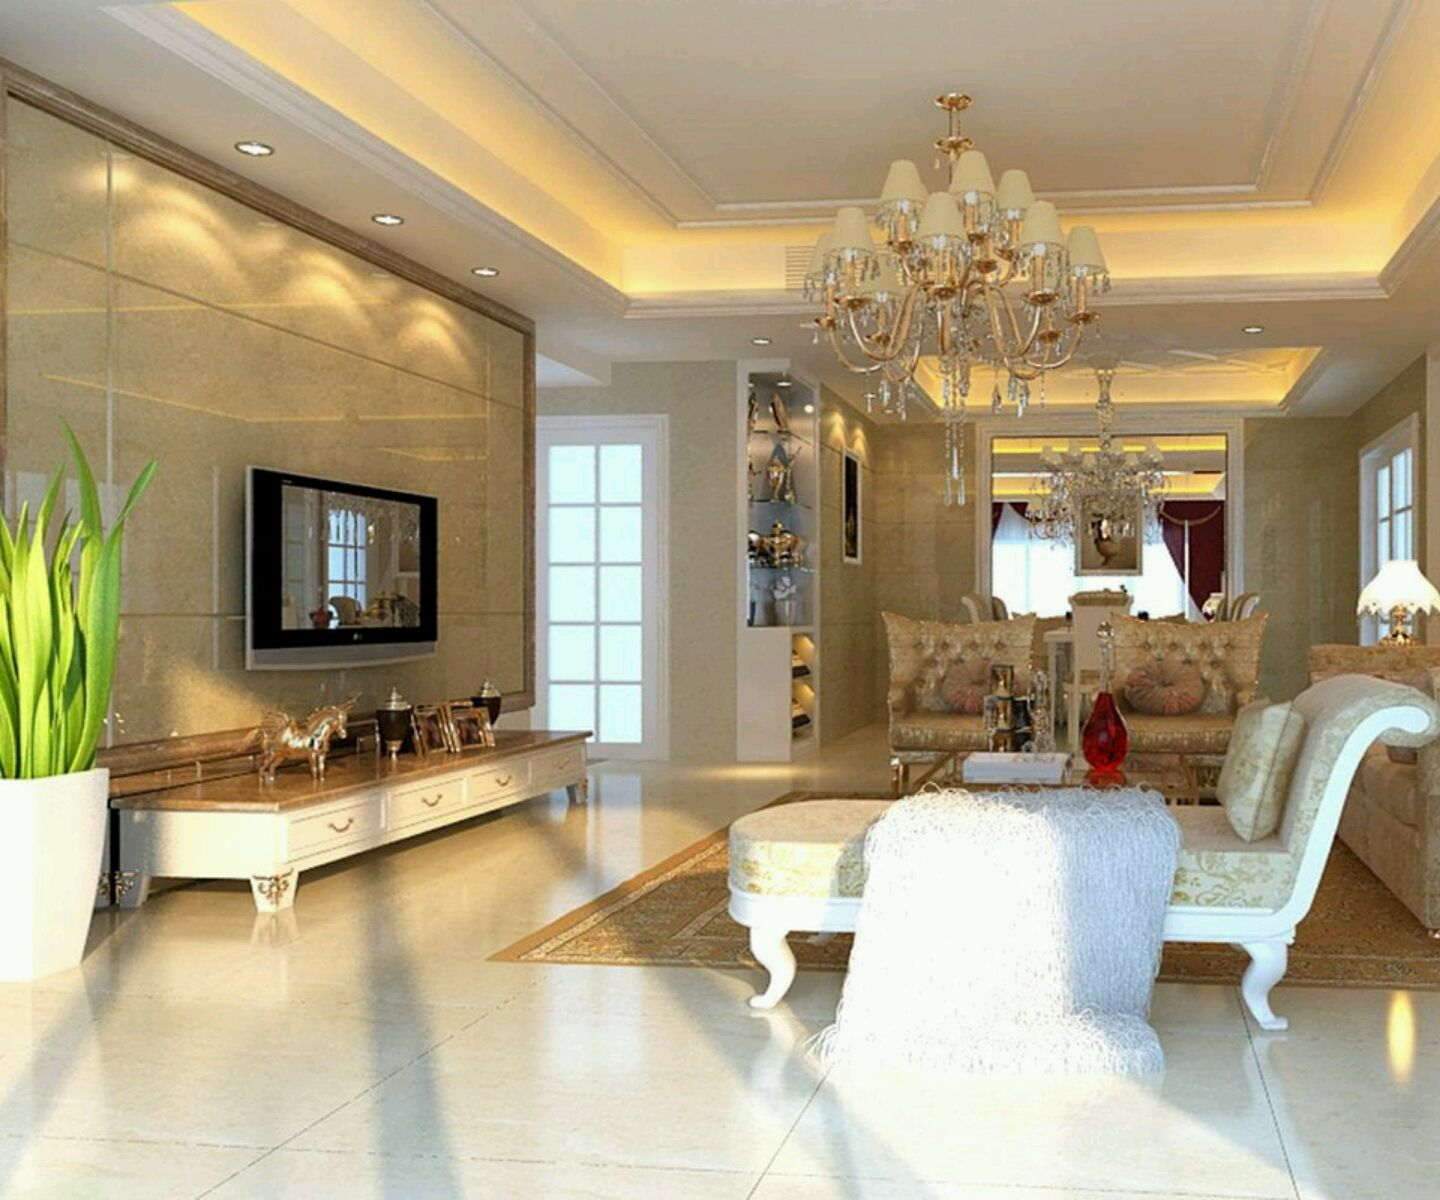 Luxury homes interior decoration living room designs ideas. | New ...